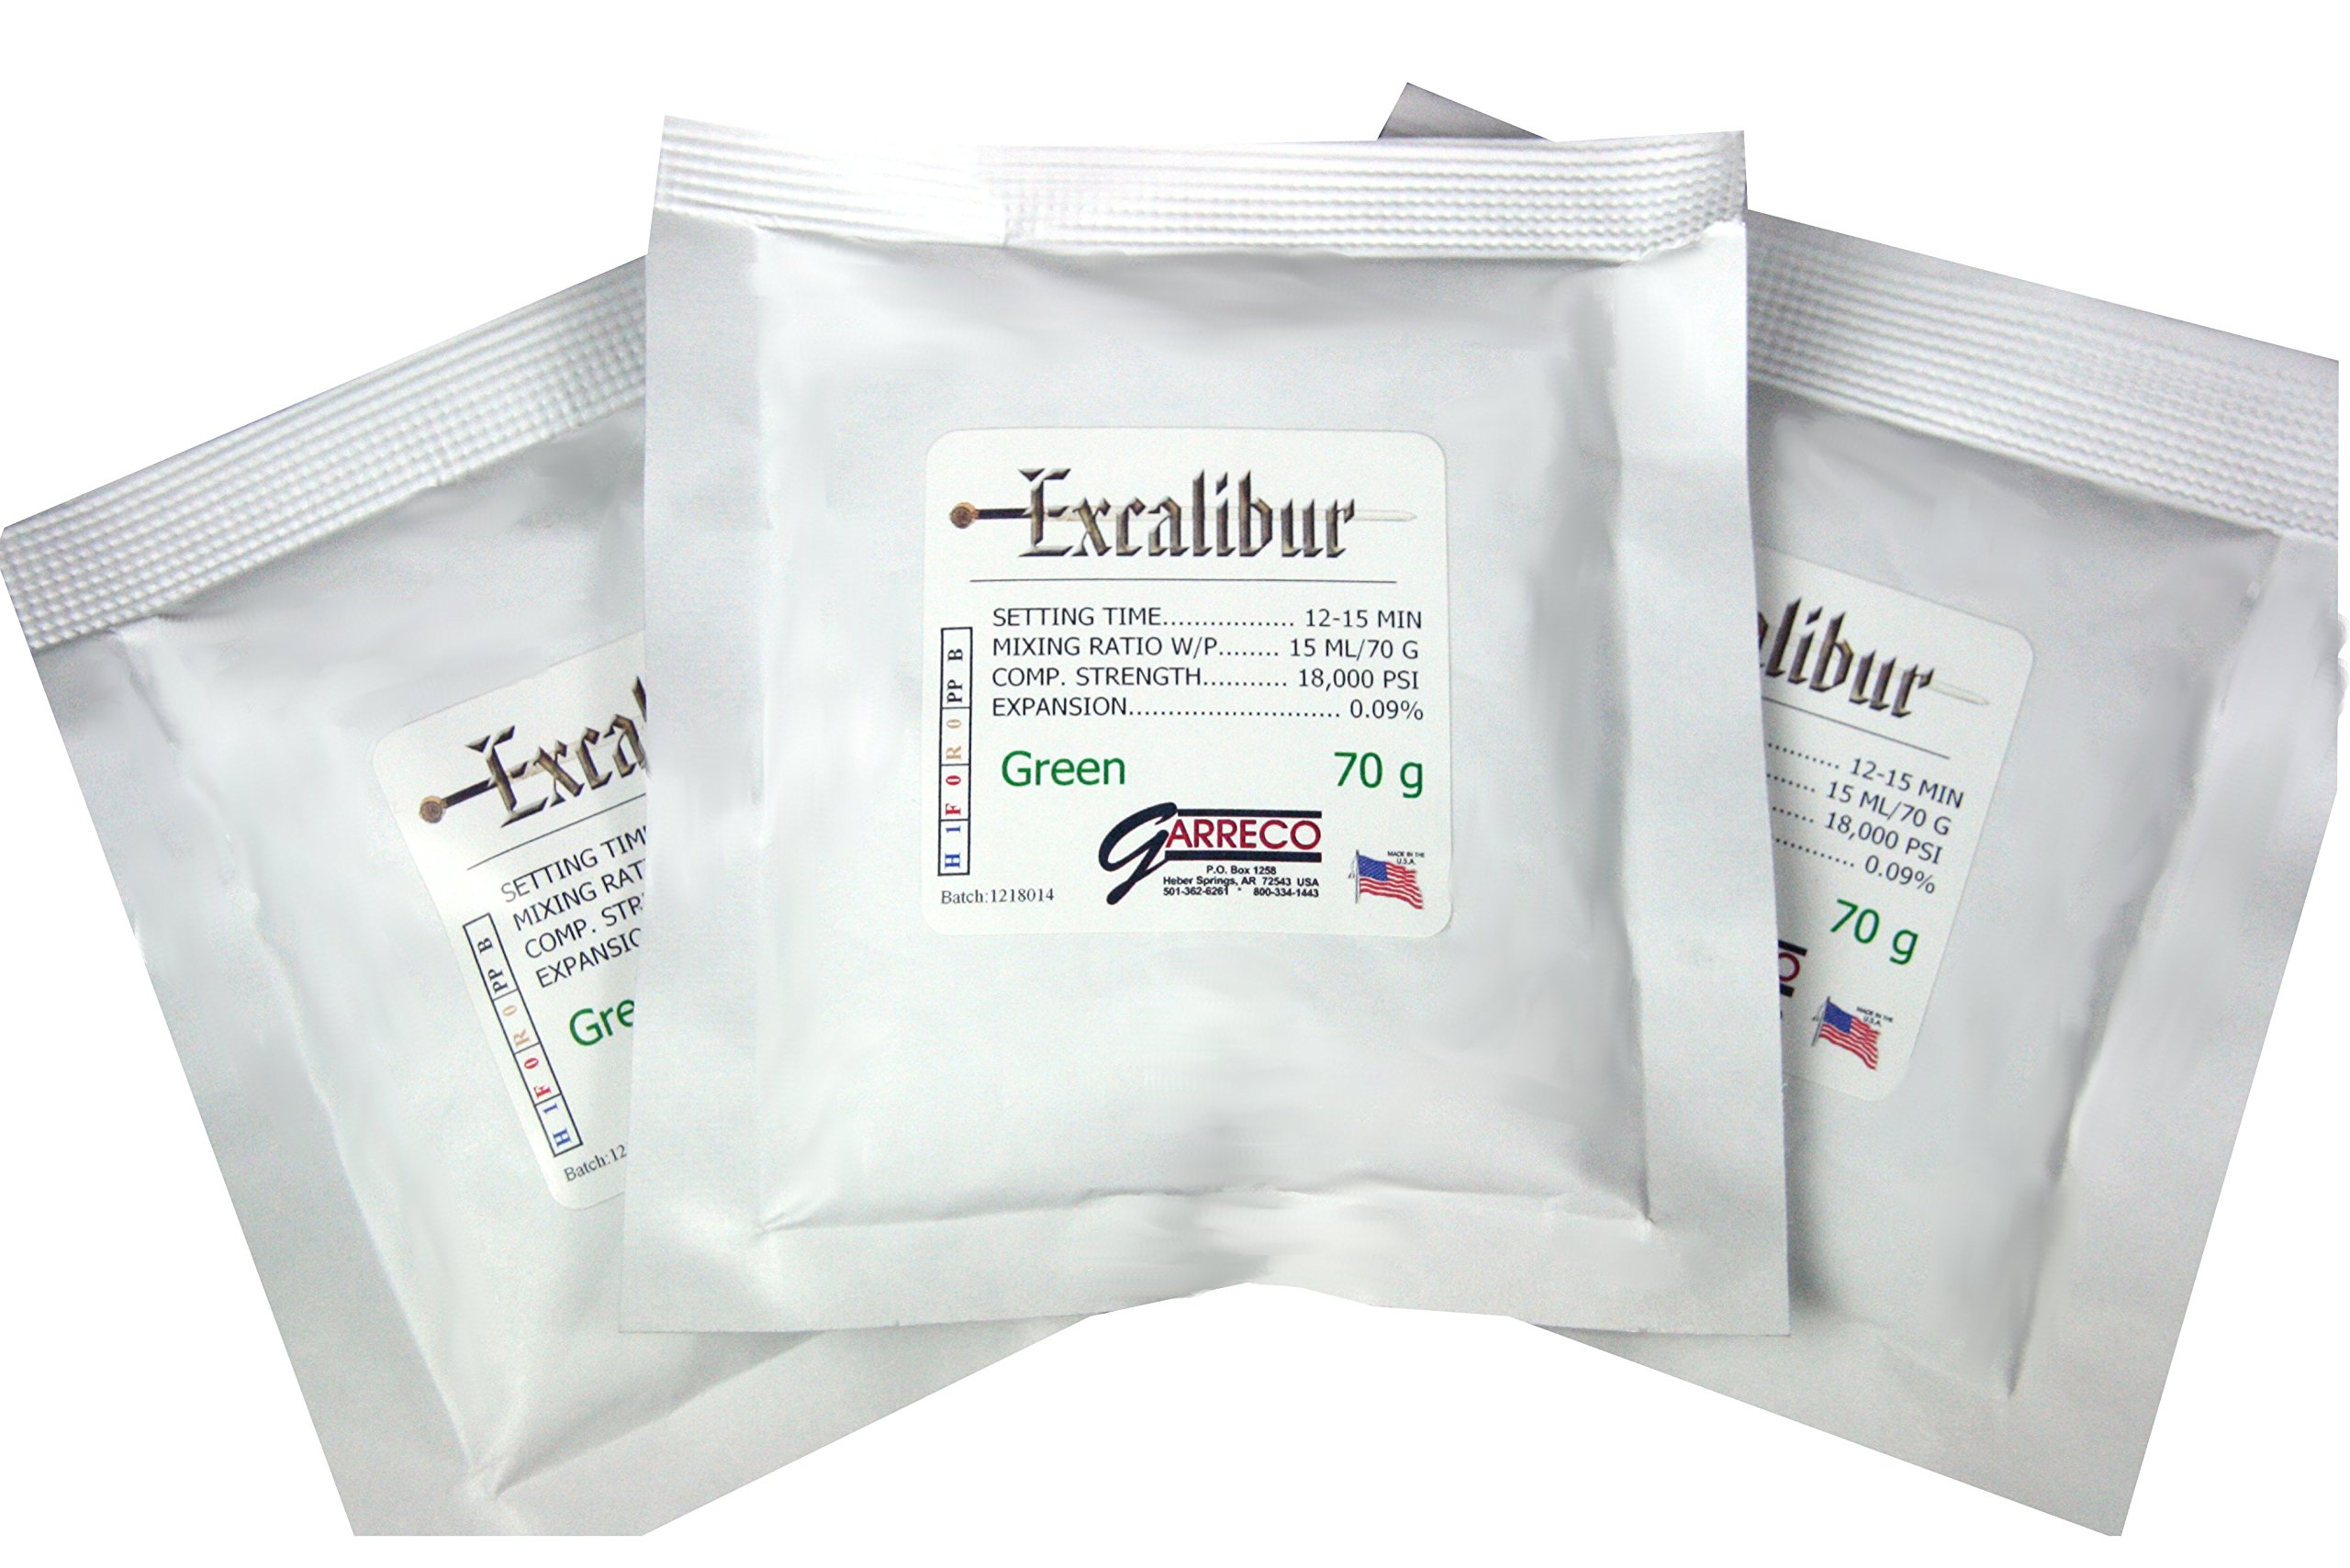 Garreco 1352580 Dental Excalibur, Type IV Die Stone, 120 x 70 g Pouches, Green (Pack of 120) by Garreco,LLC (Image #1)